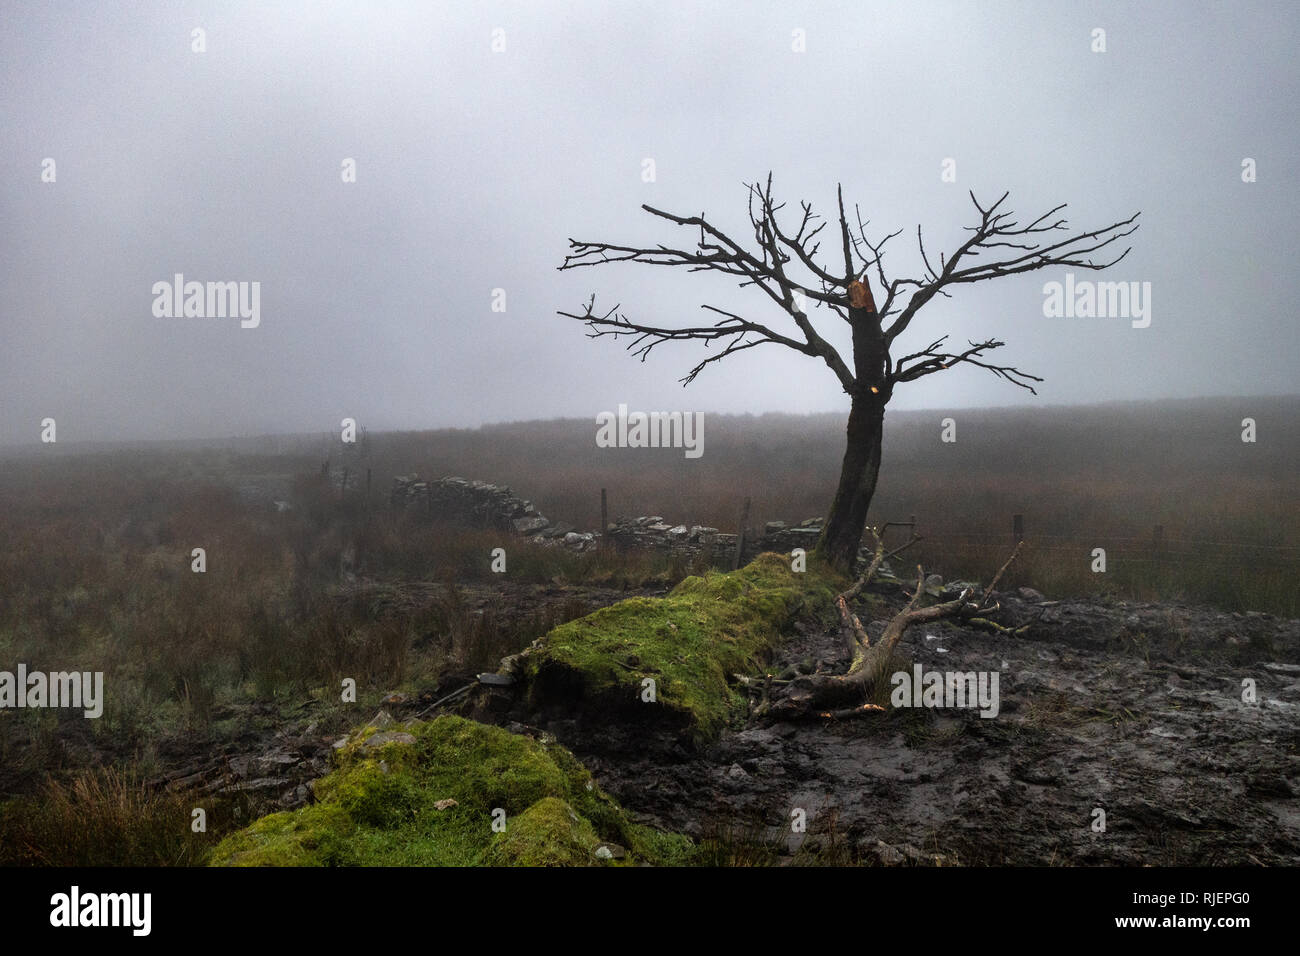 Silhouette of  tree standing alone in a foggy winter day field at Tinkler's Brook, Oswaldtwistle, Blackburn, England - Stock Image